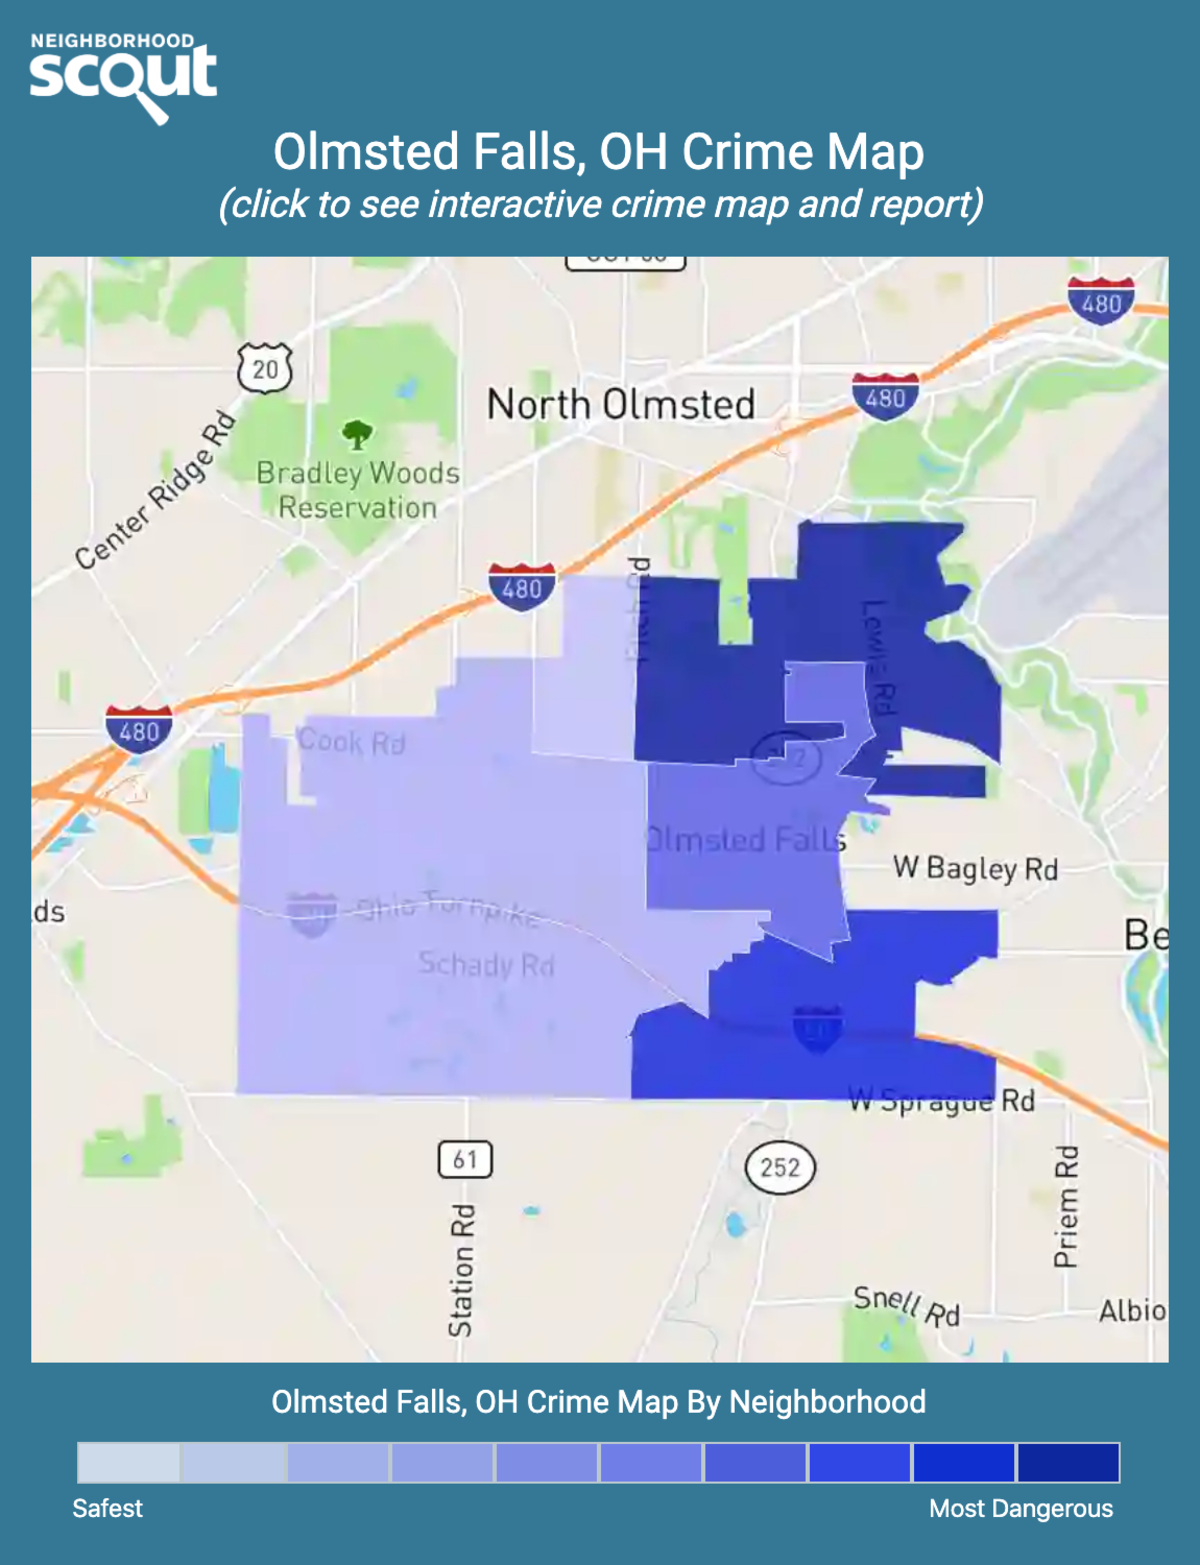 Olmsted Falls, Ohio crime map